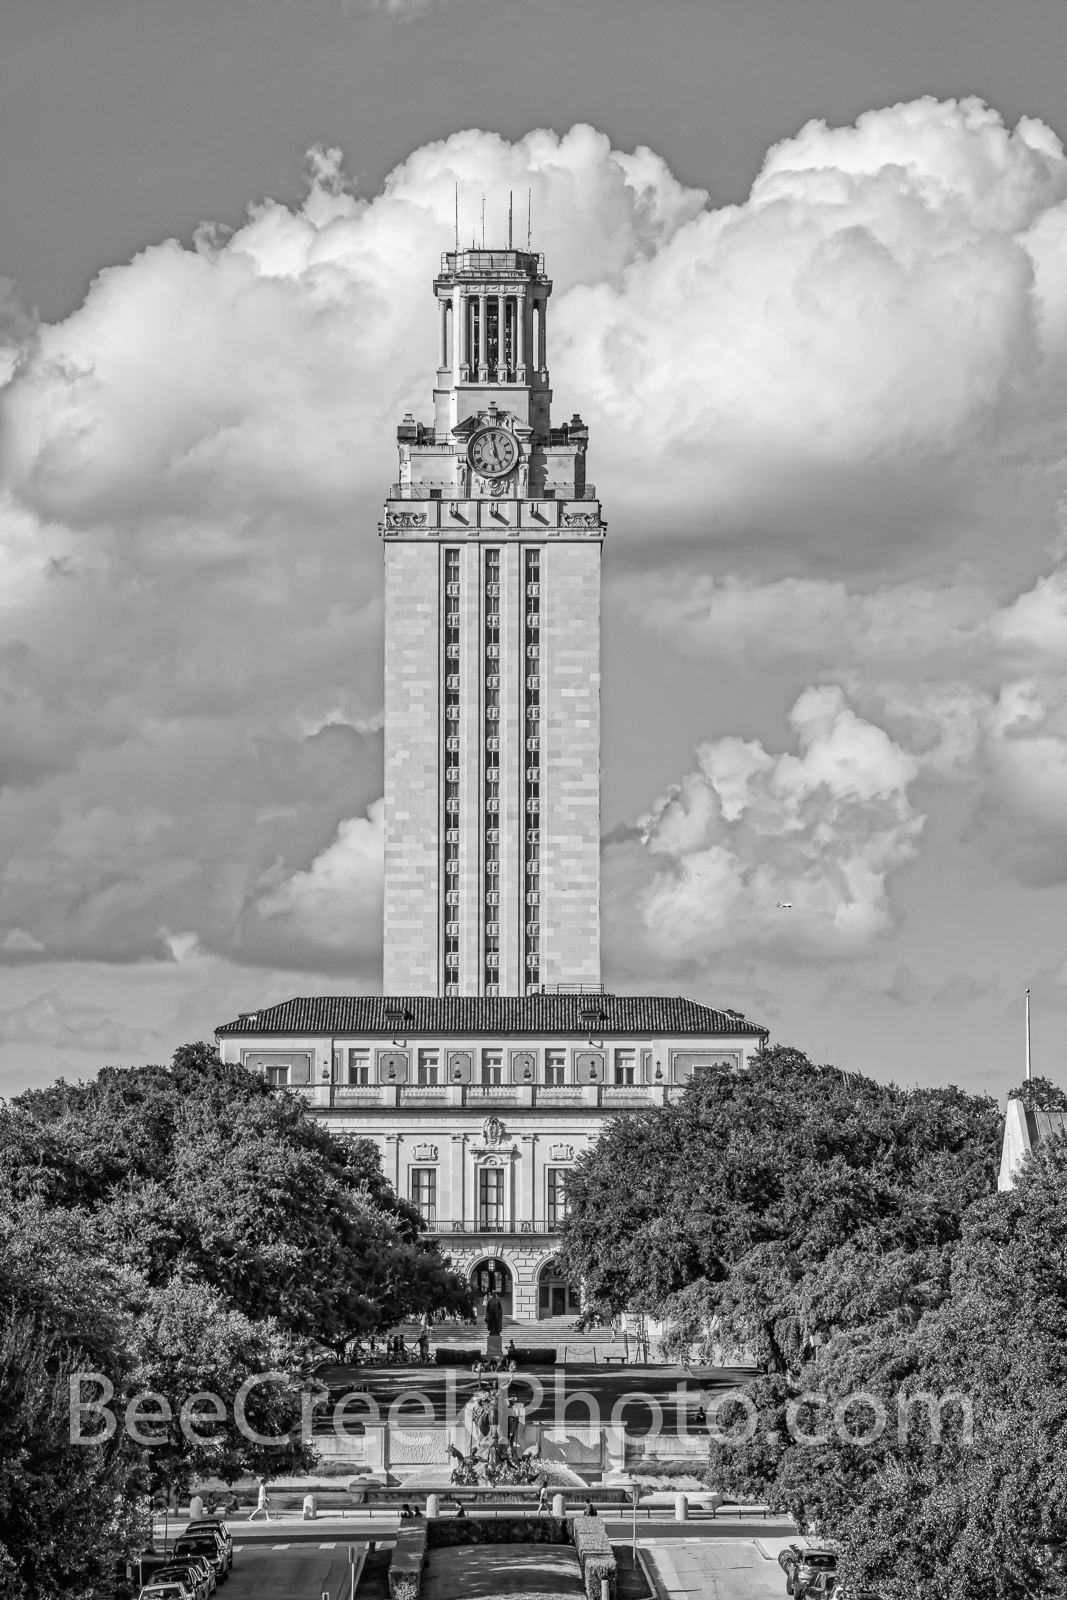 texas, ut, tower, austin, landmark, austin downtown, austin texas, city of austin, cityscape, cityscapes, verticle, bw, black and white, city, library, campus, administration, school, university, aust, photo